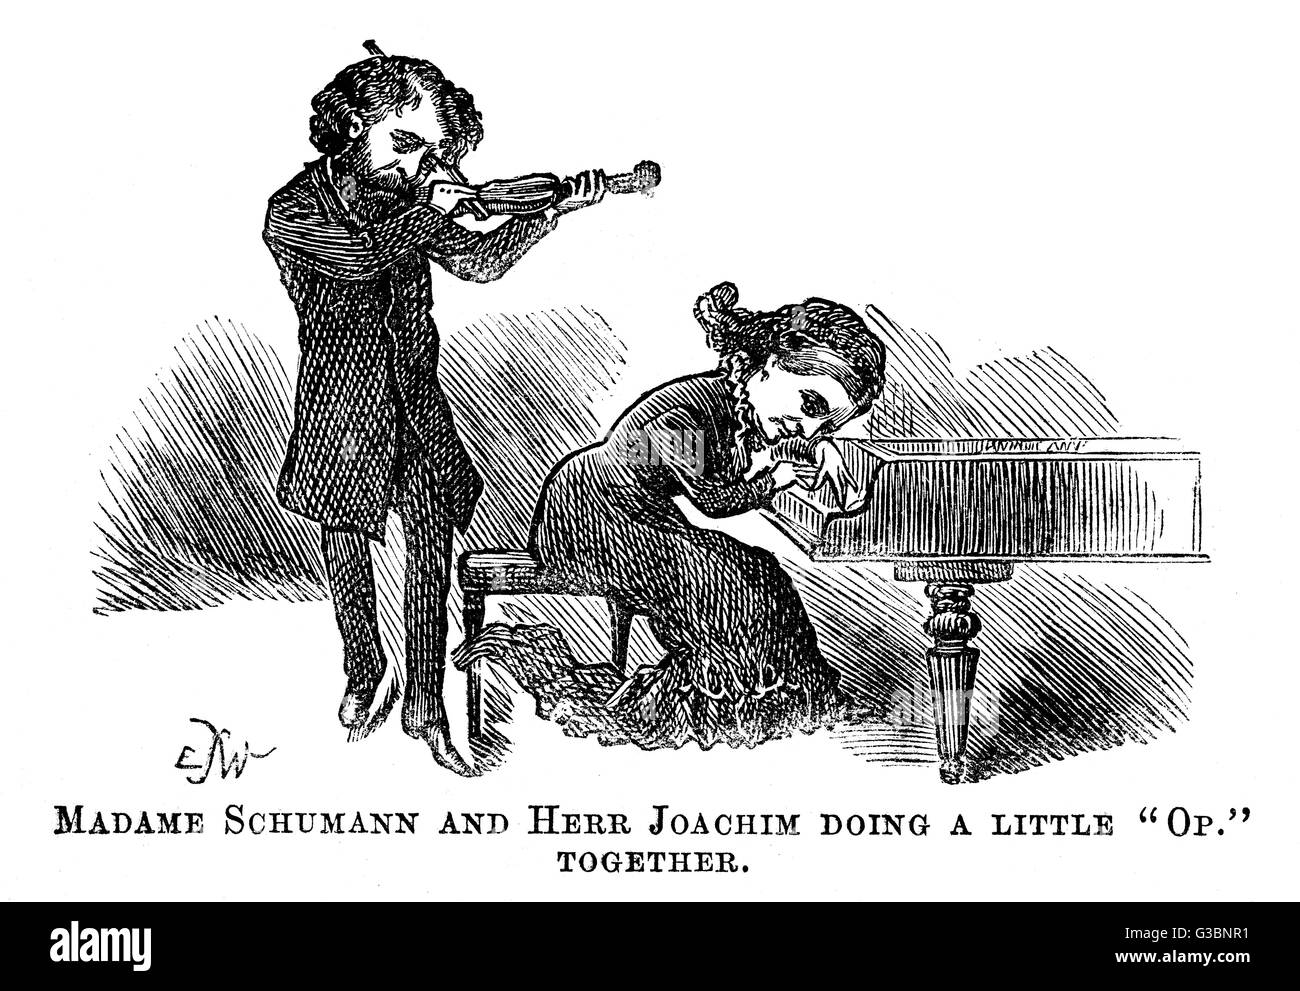 Clara Schumann and Joachim doing a little 'Op'  together. She plays the piano, he plays the violin.     - Stock Image